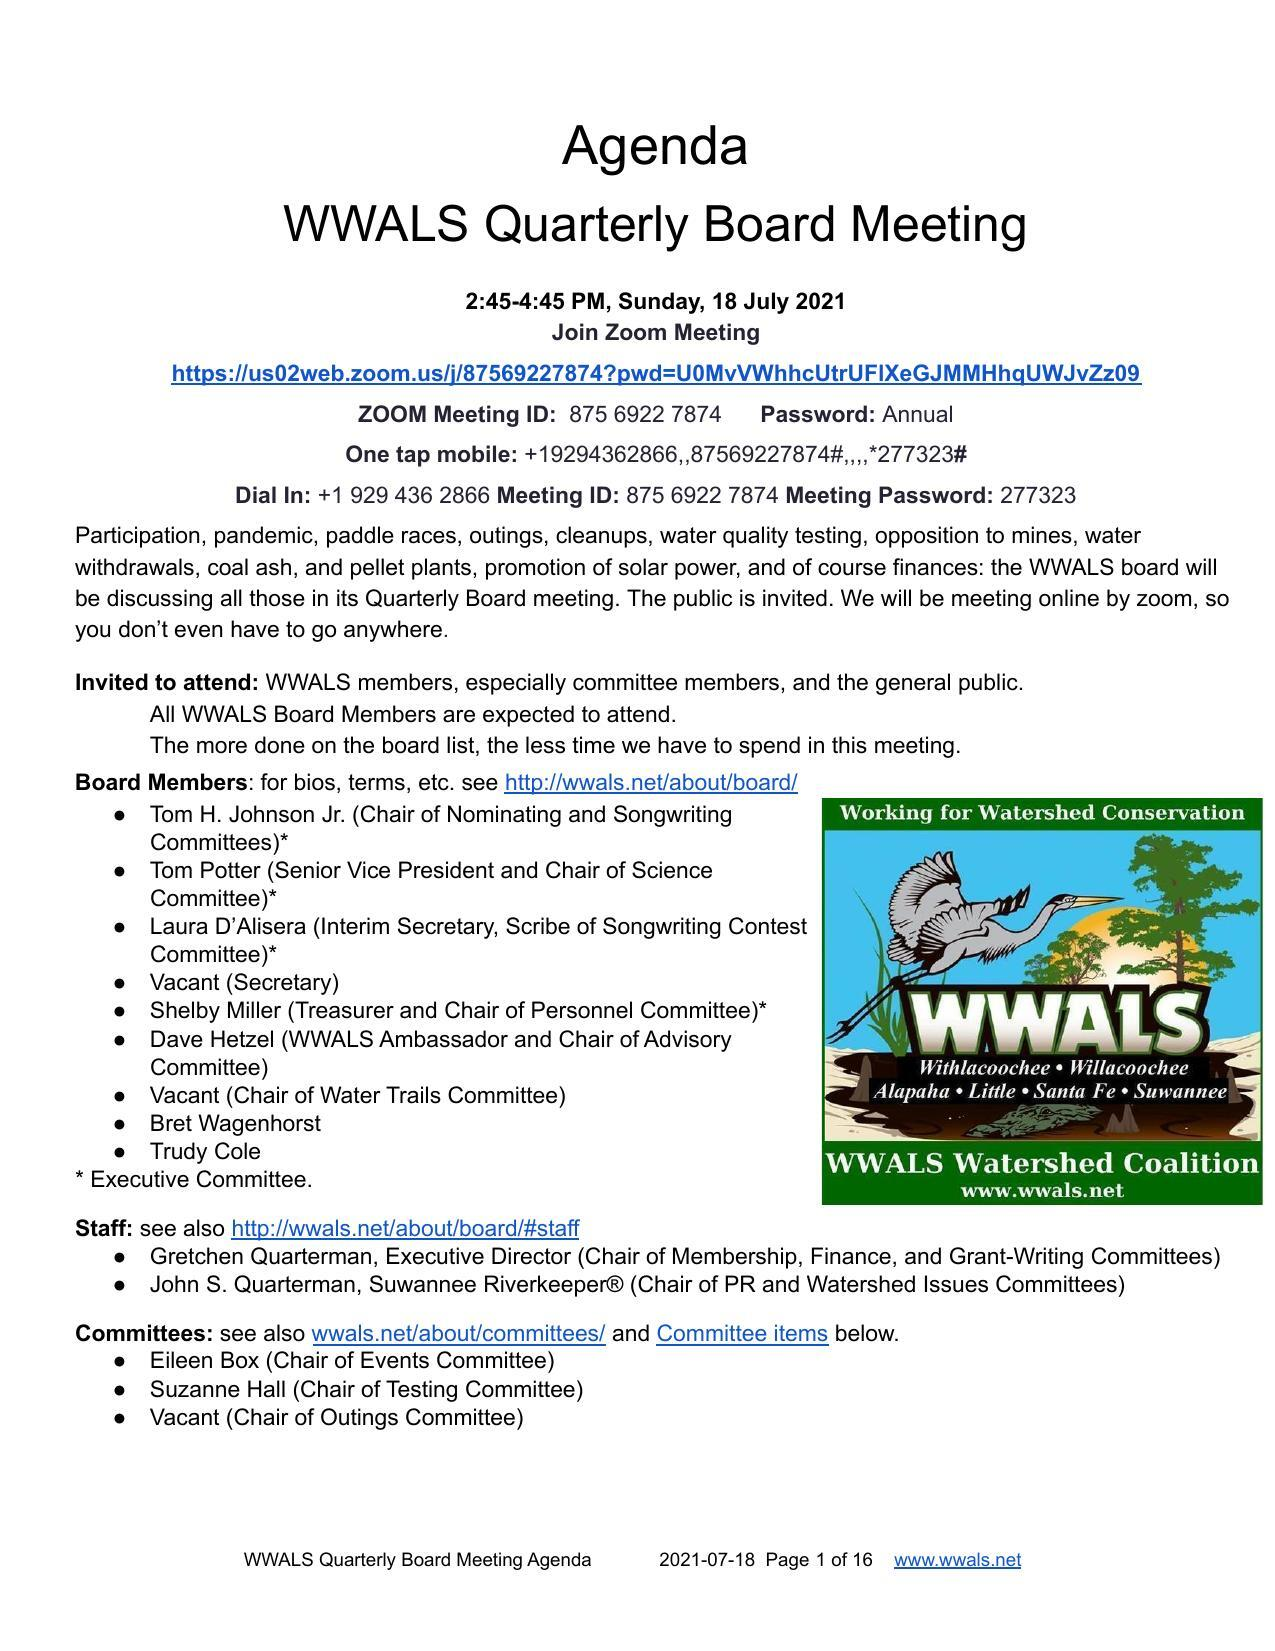 [Who: Quarterly Board Meeting 2021-07-18]